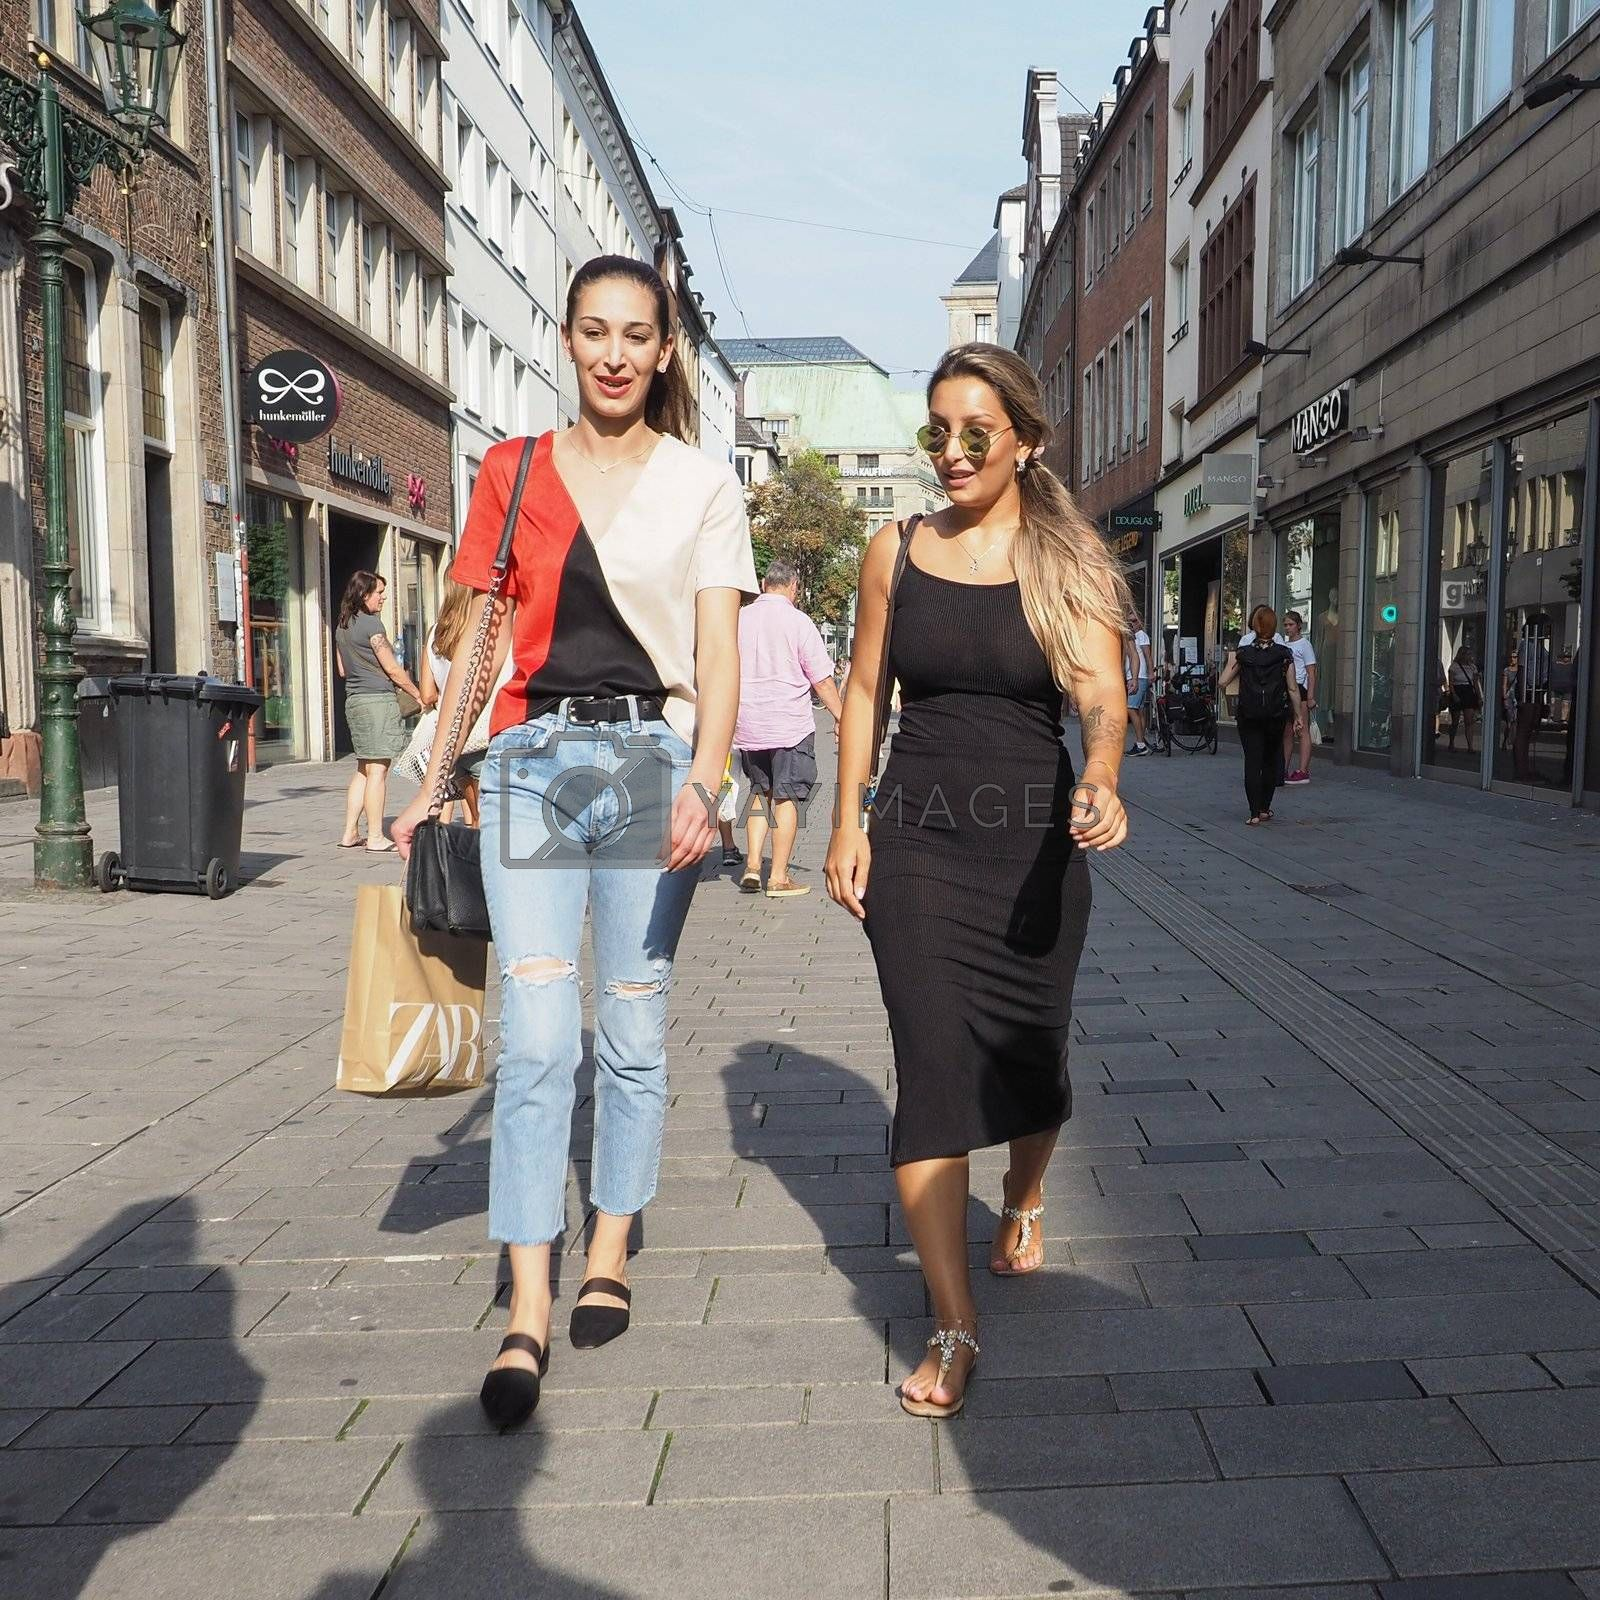 DUESSELDORF, GERMANY - CIRCA AUGUST 2019: People in the city centre